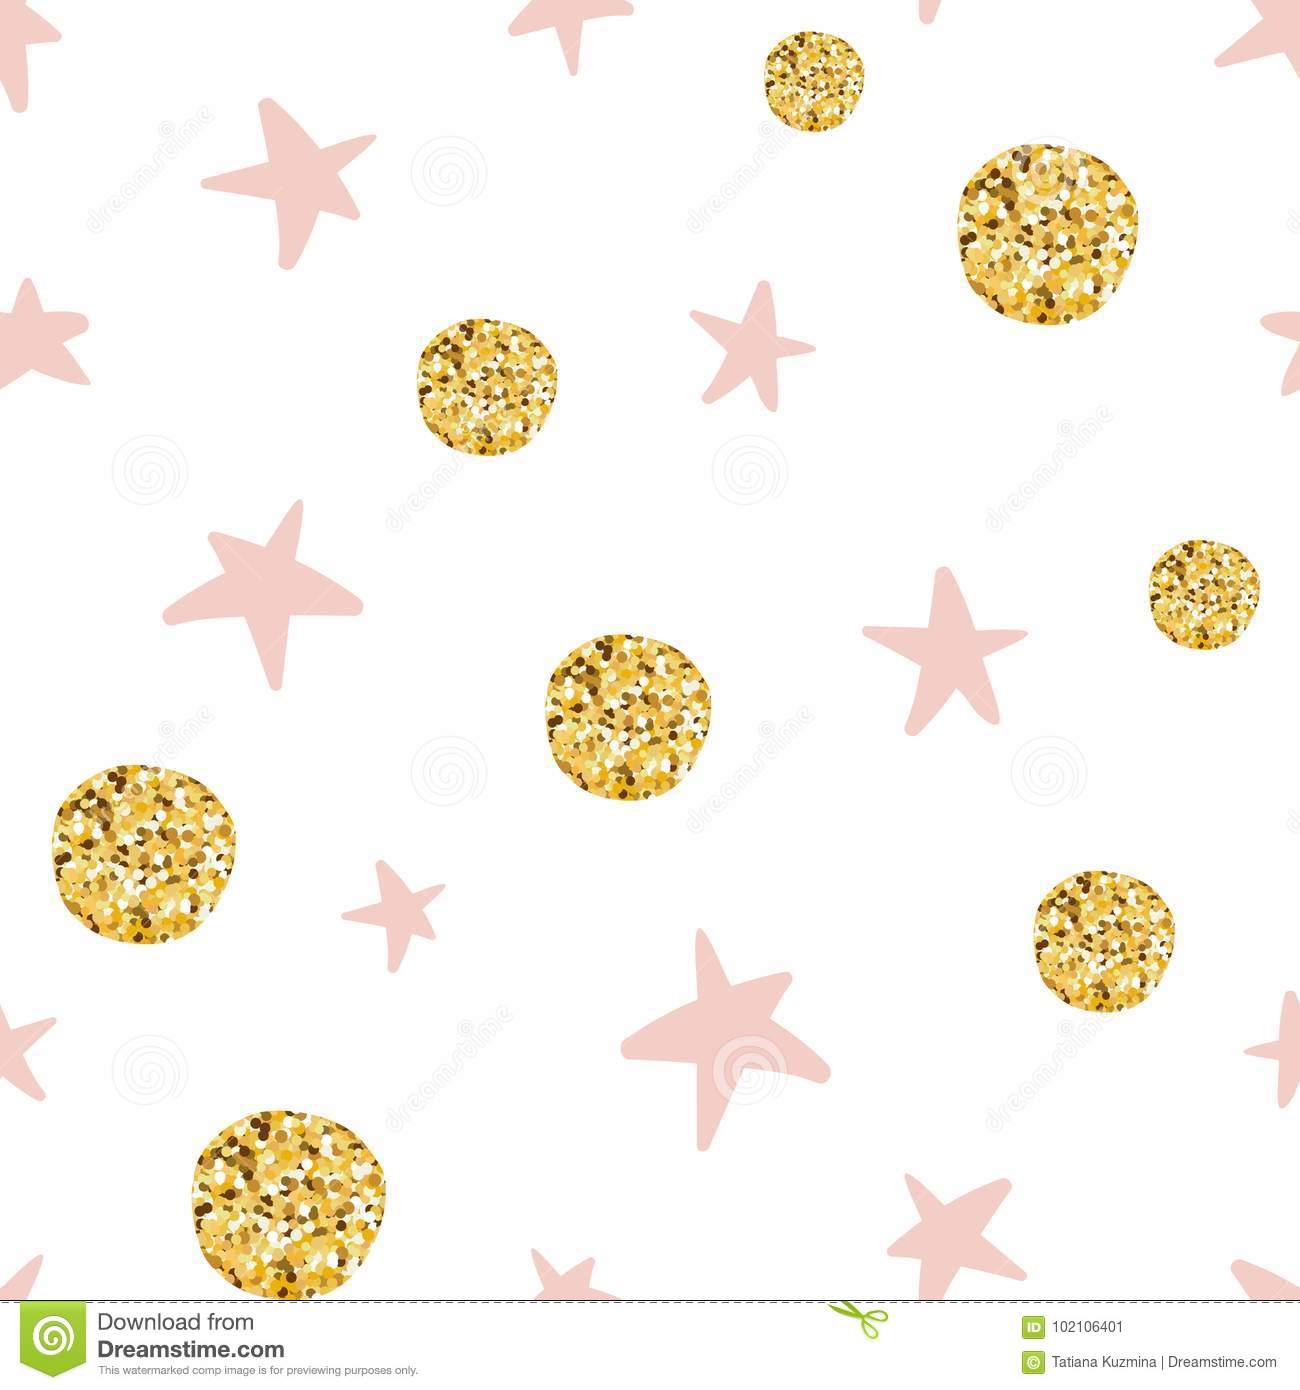 Hand Drawn Seamless Pattern Decoreted Gold Balls Pink Stars For Christmas Wallpaper Or Baby Shower Stock Vector Illustration Of Girl Backdrop 102106401